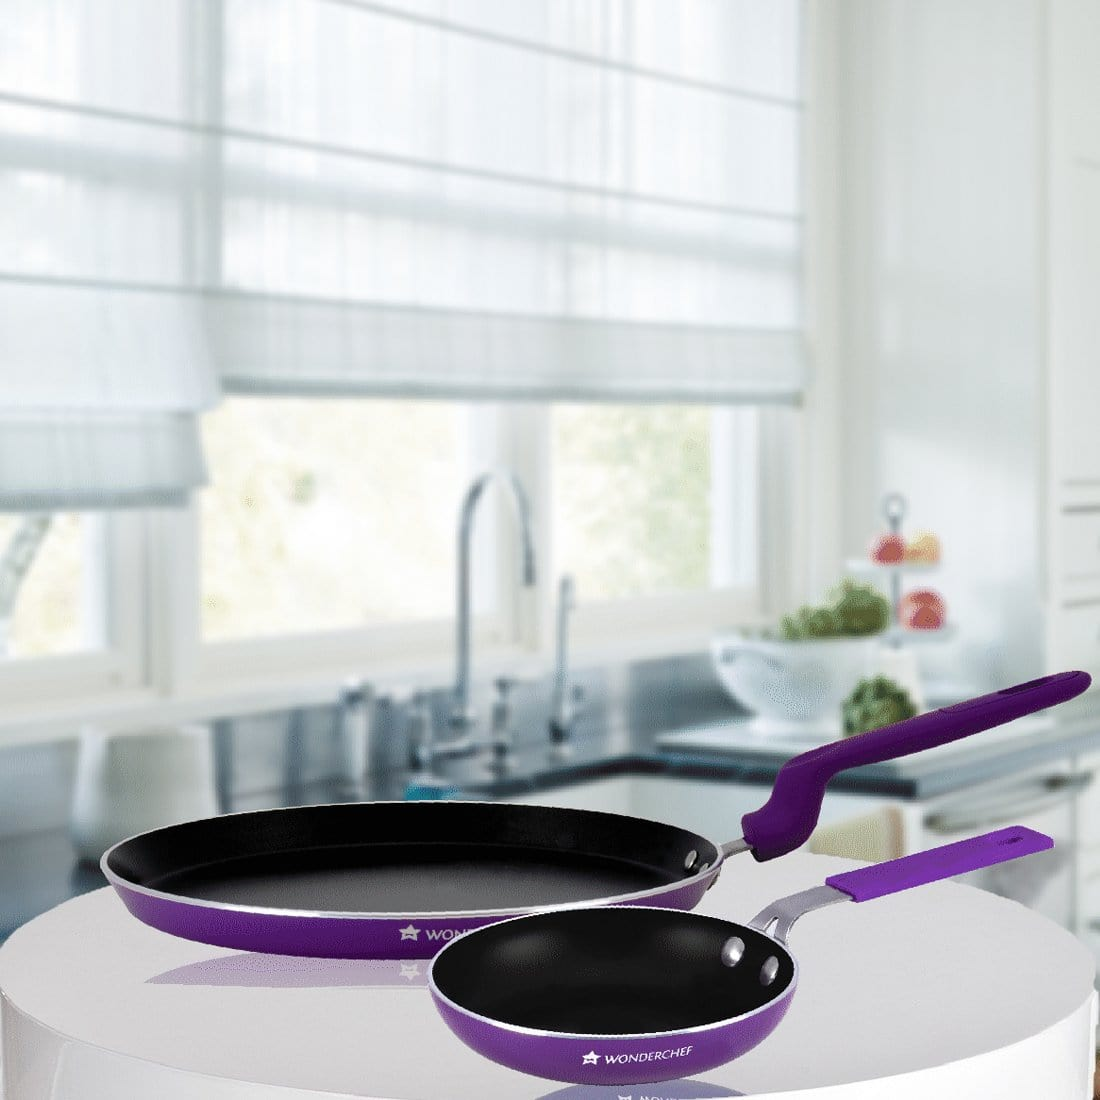 Cookware Wonderchef 8904214703165